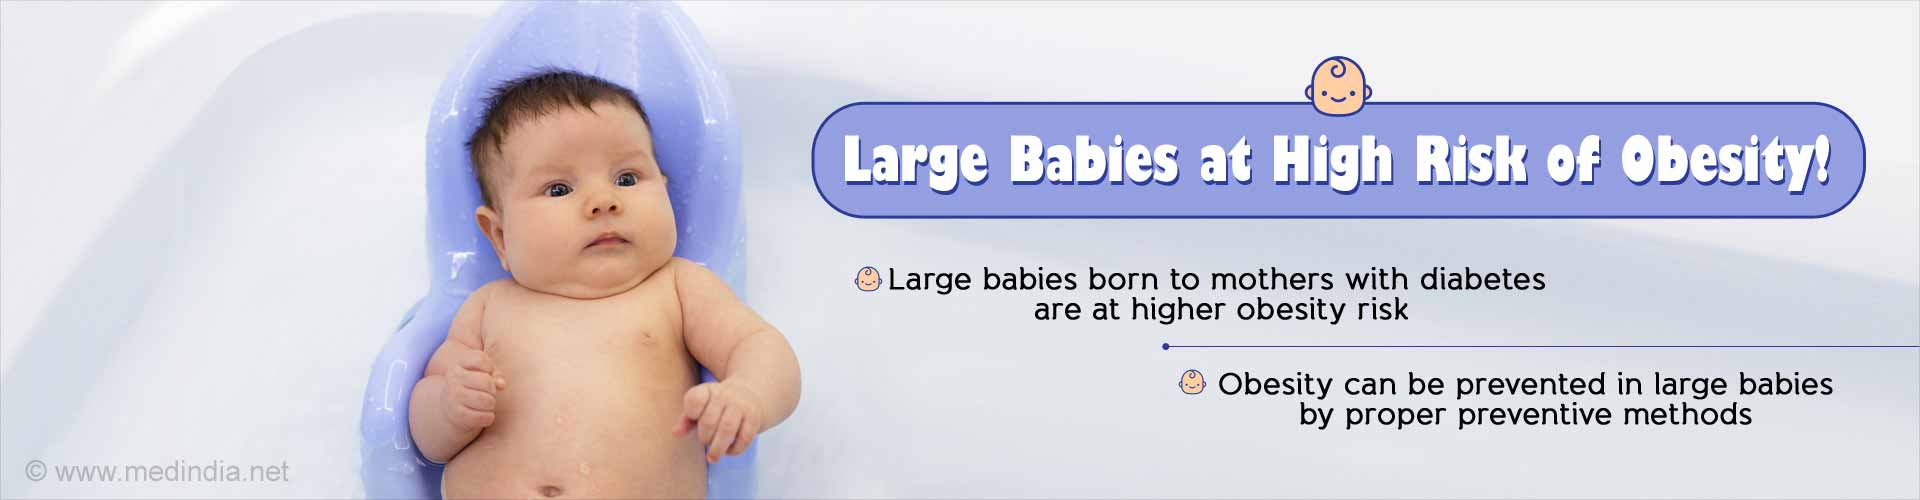 Large Babies Born to Diabetic Mothers are at High Obesity Risk